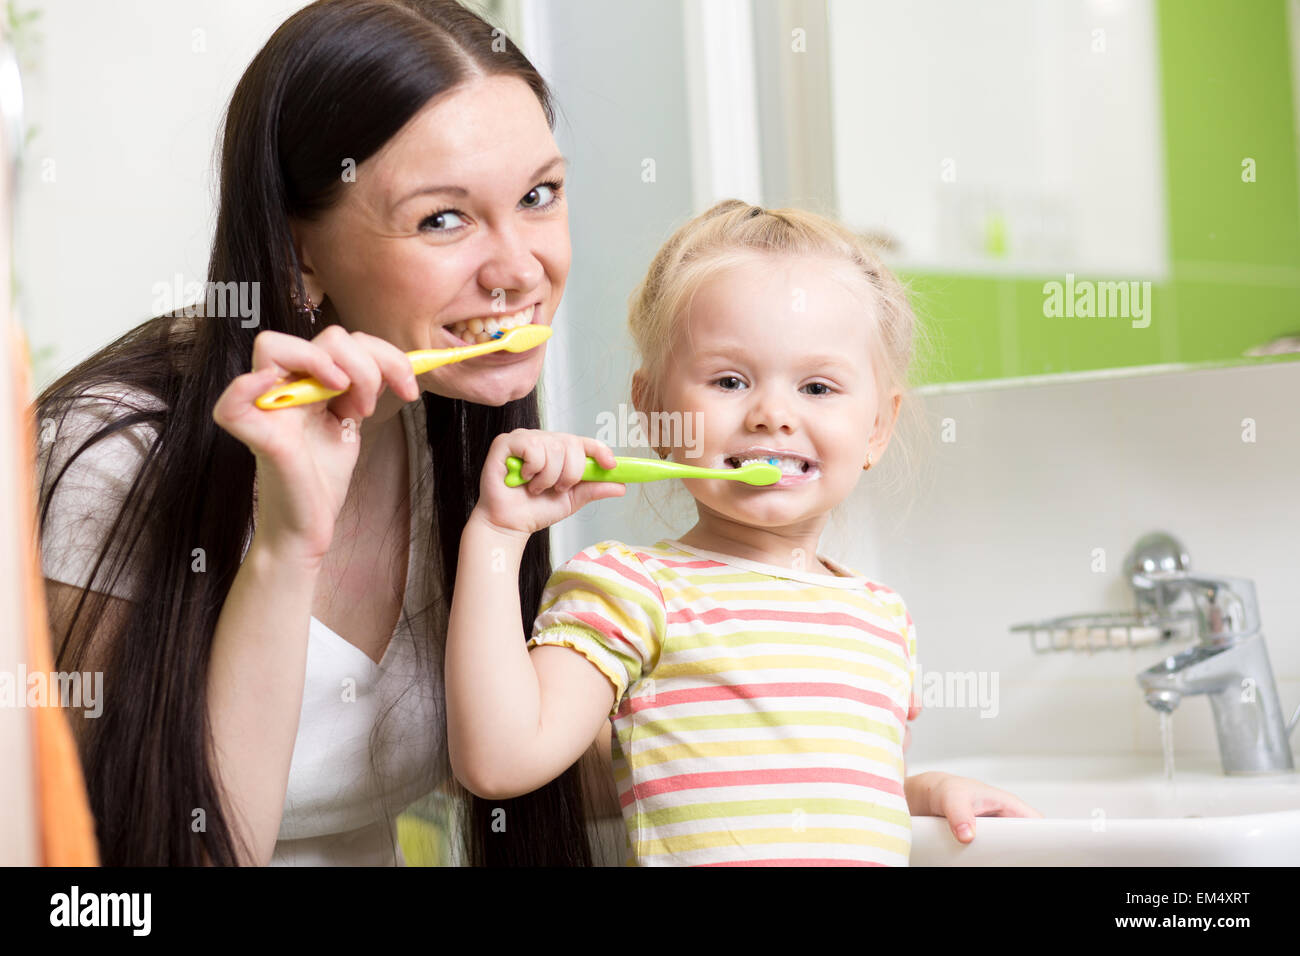 happy mother and daughter kid girl brushing teeth together Stock Photo